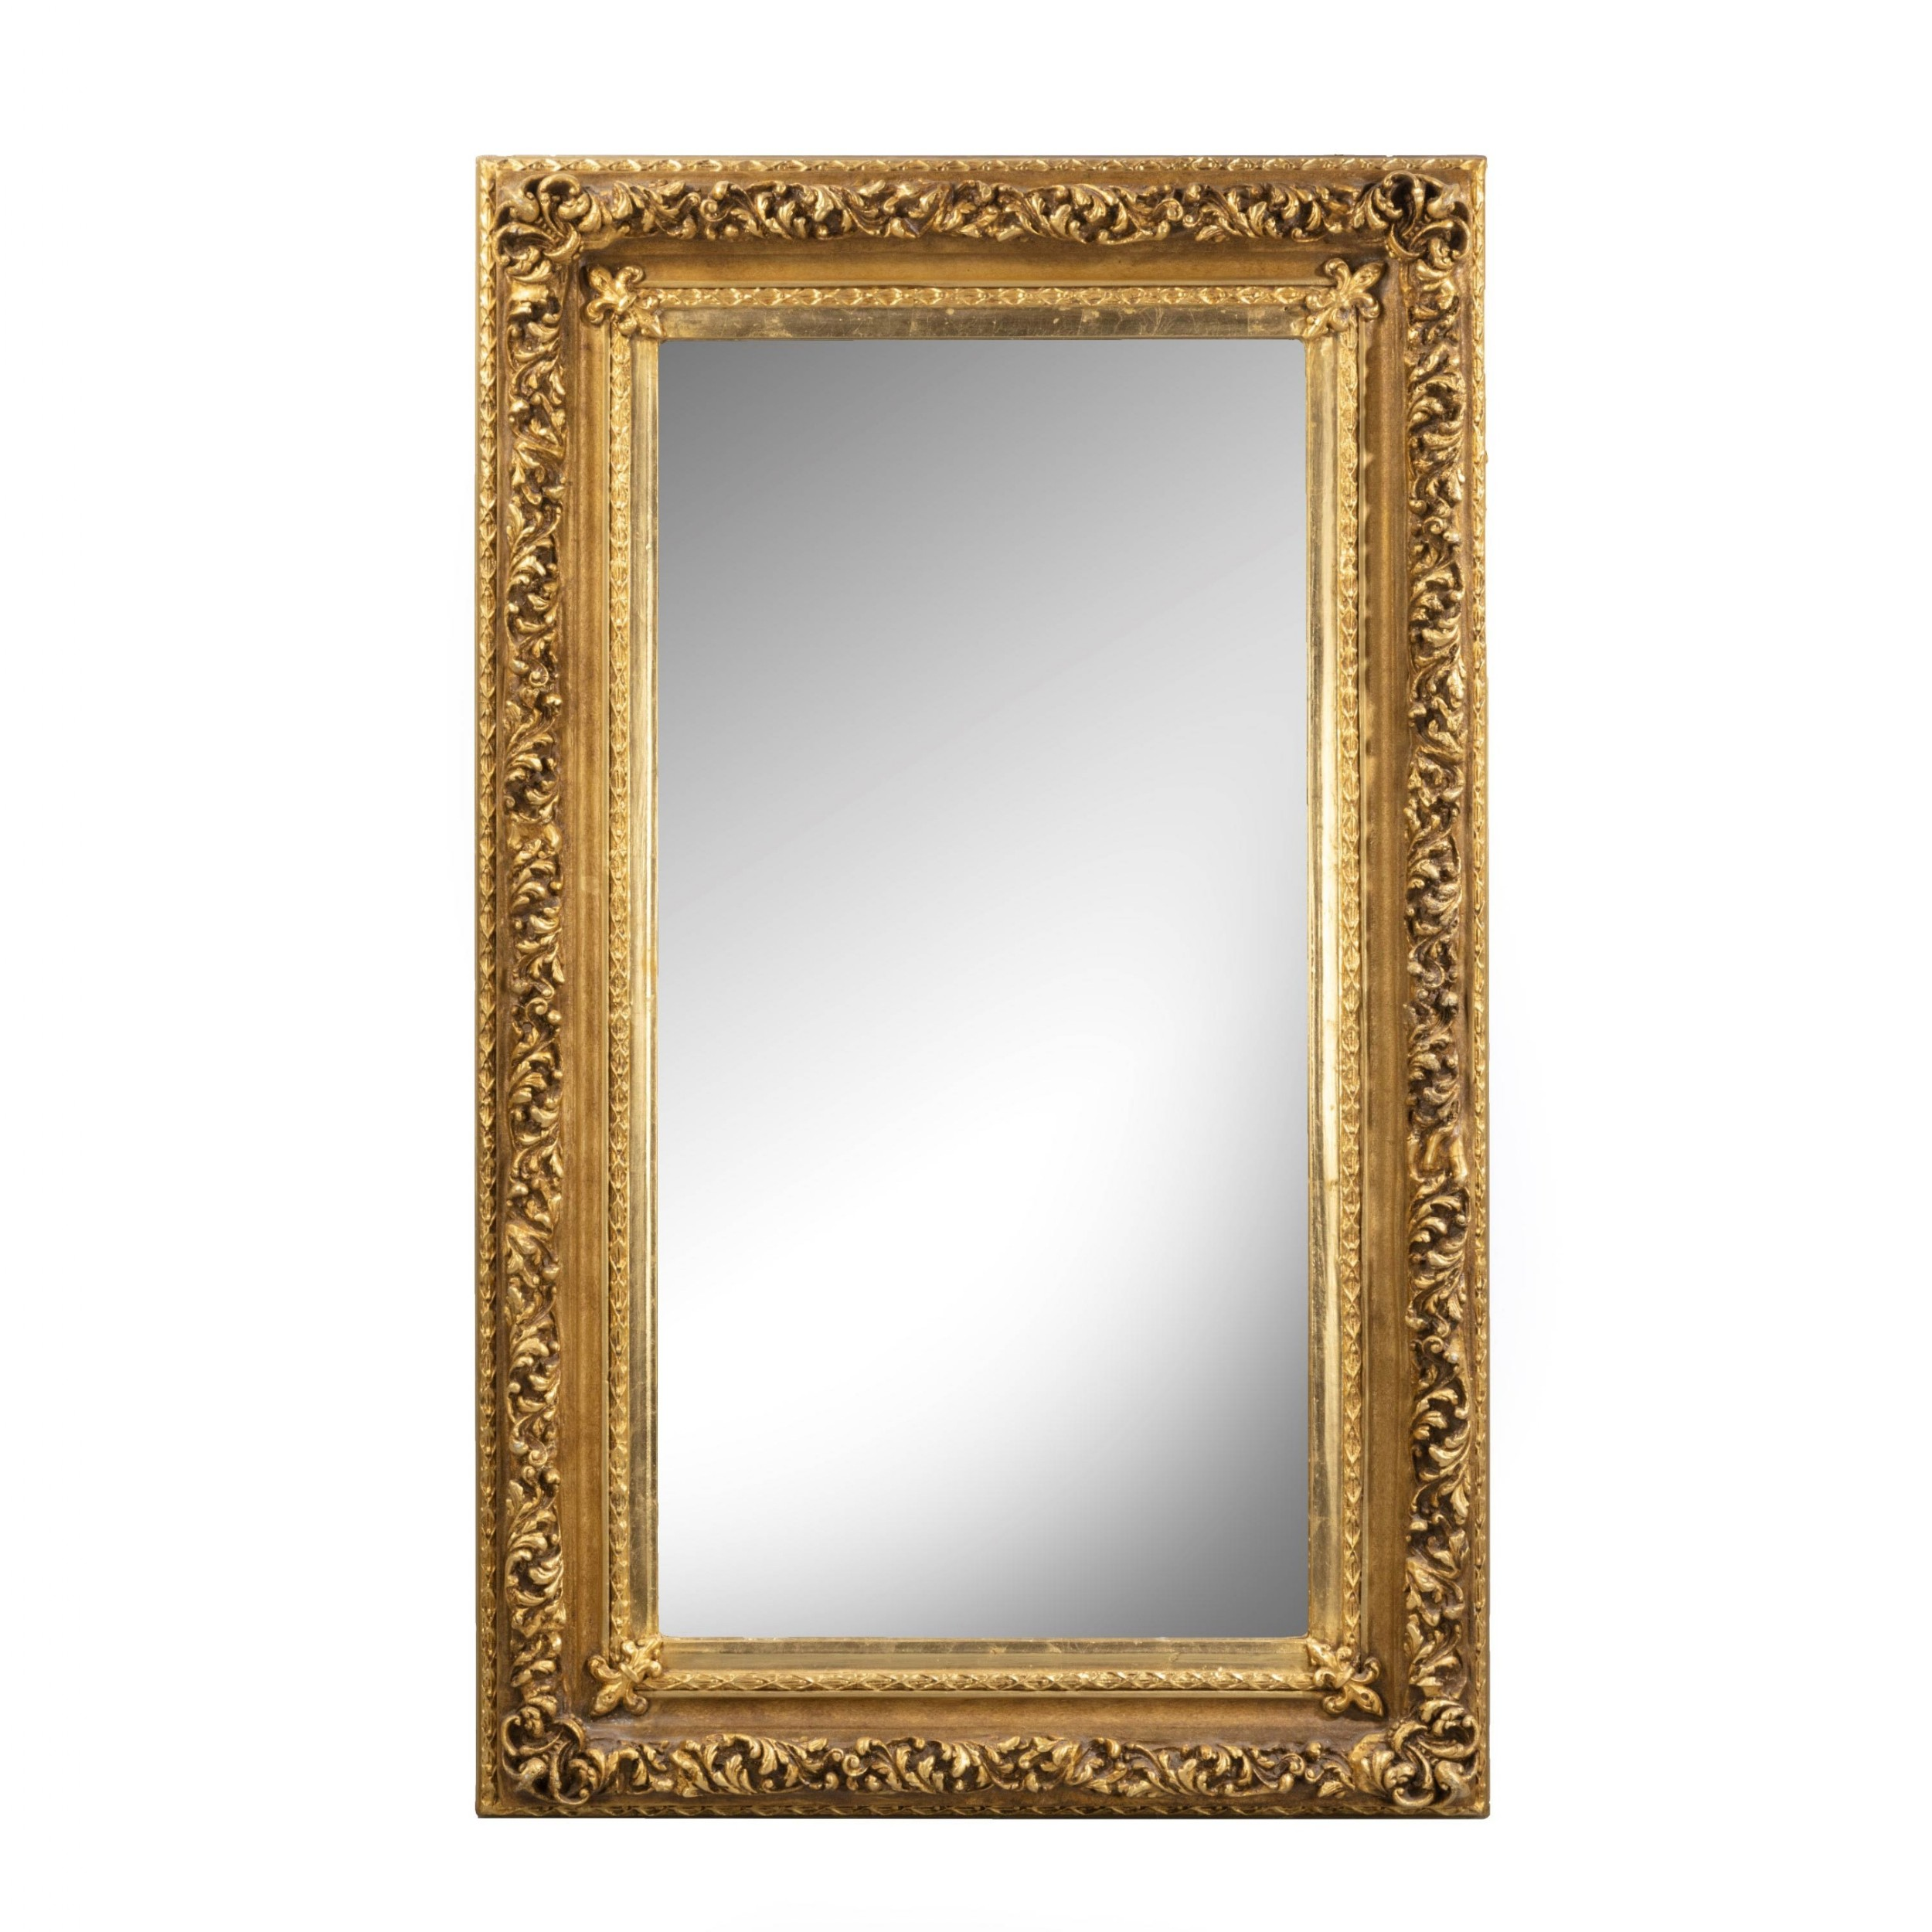 a good large early 20th century rectangular mirror